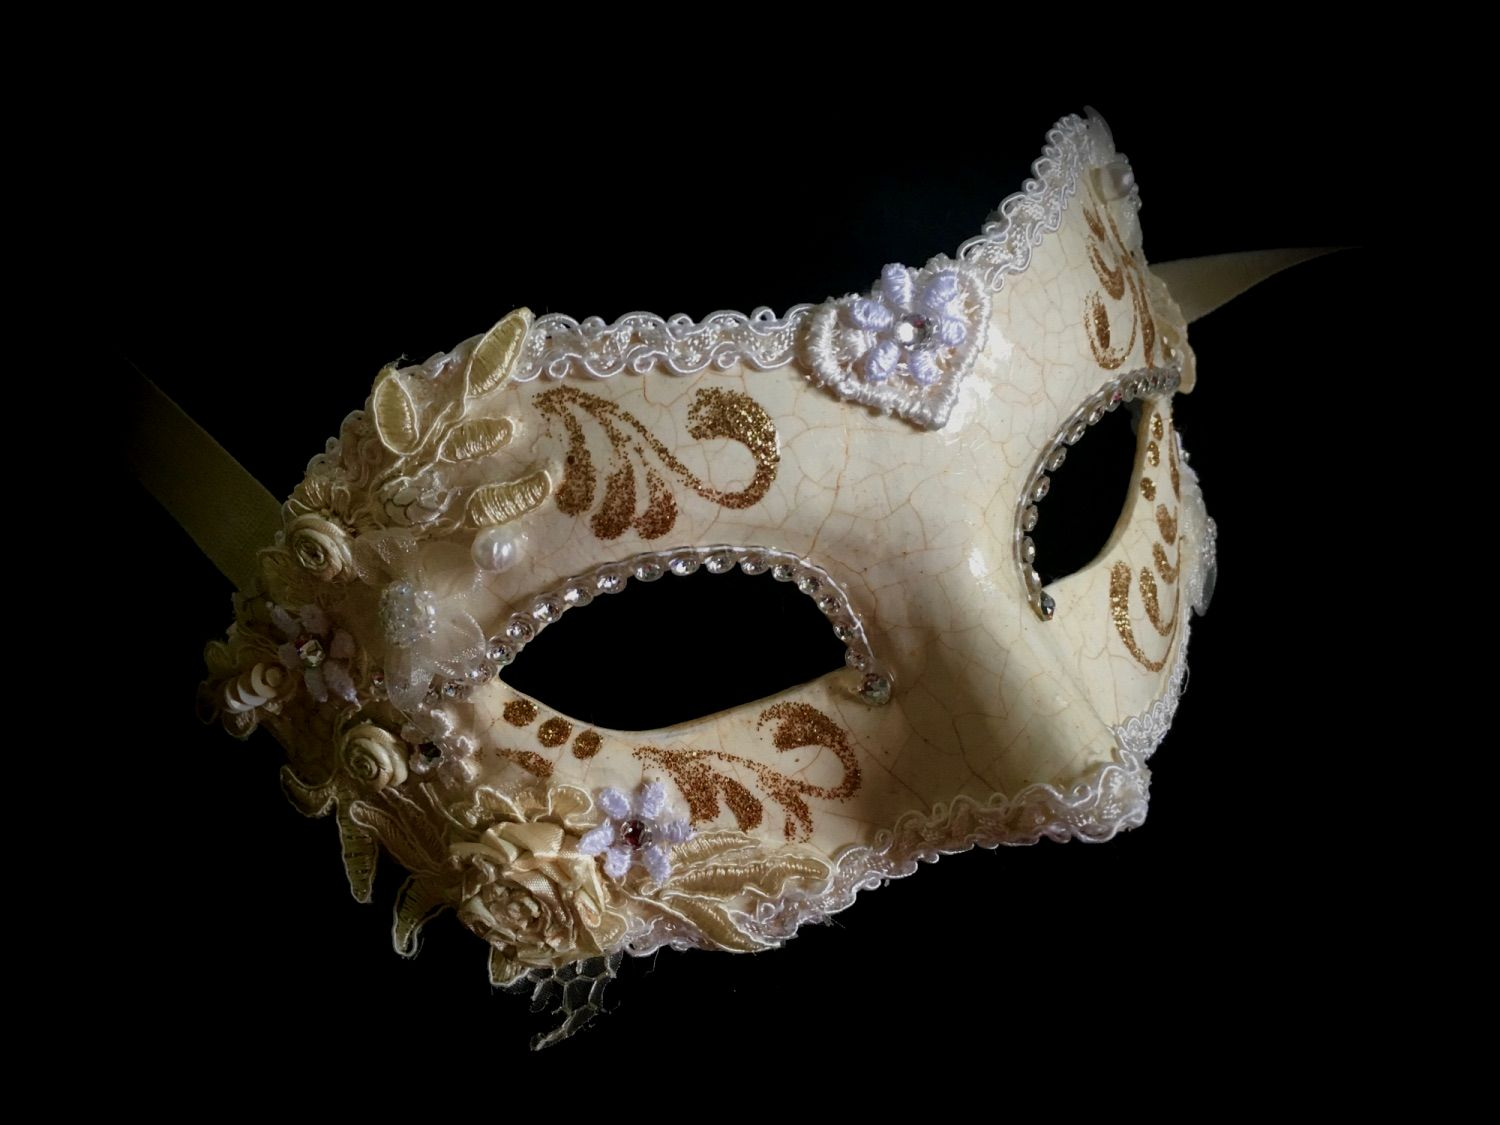 The exclusive Valentine Designer Masquerade Mask is a real Venetian masterpiece from our collection of genuine, hand-made masks.